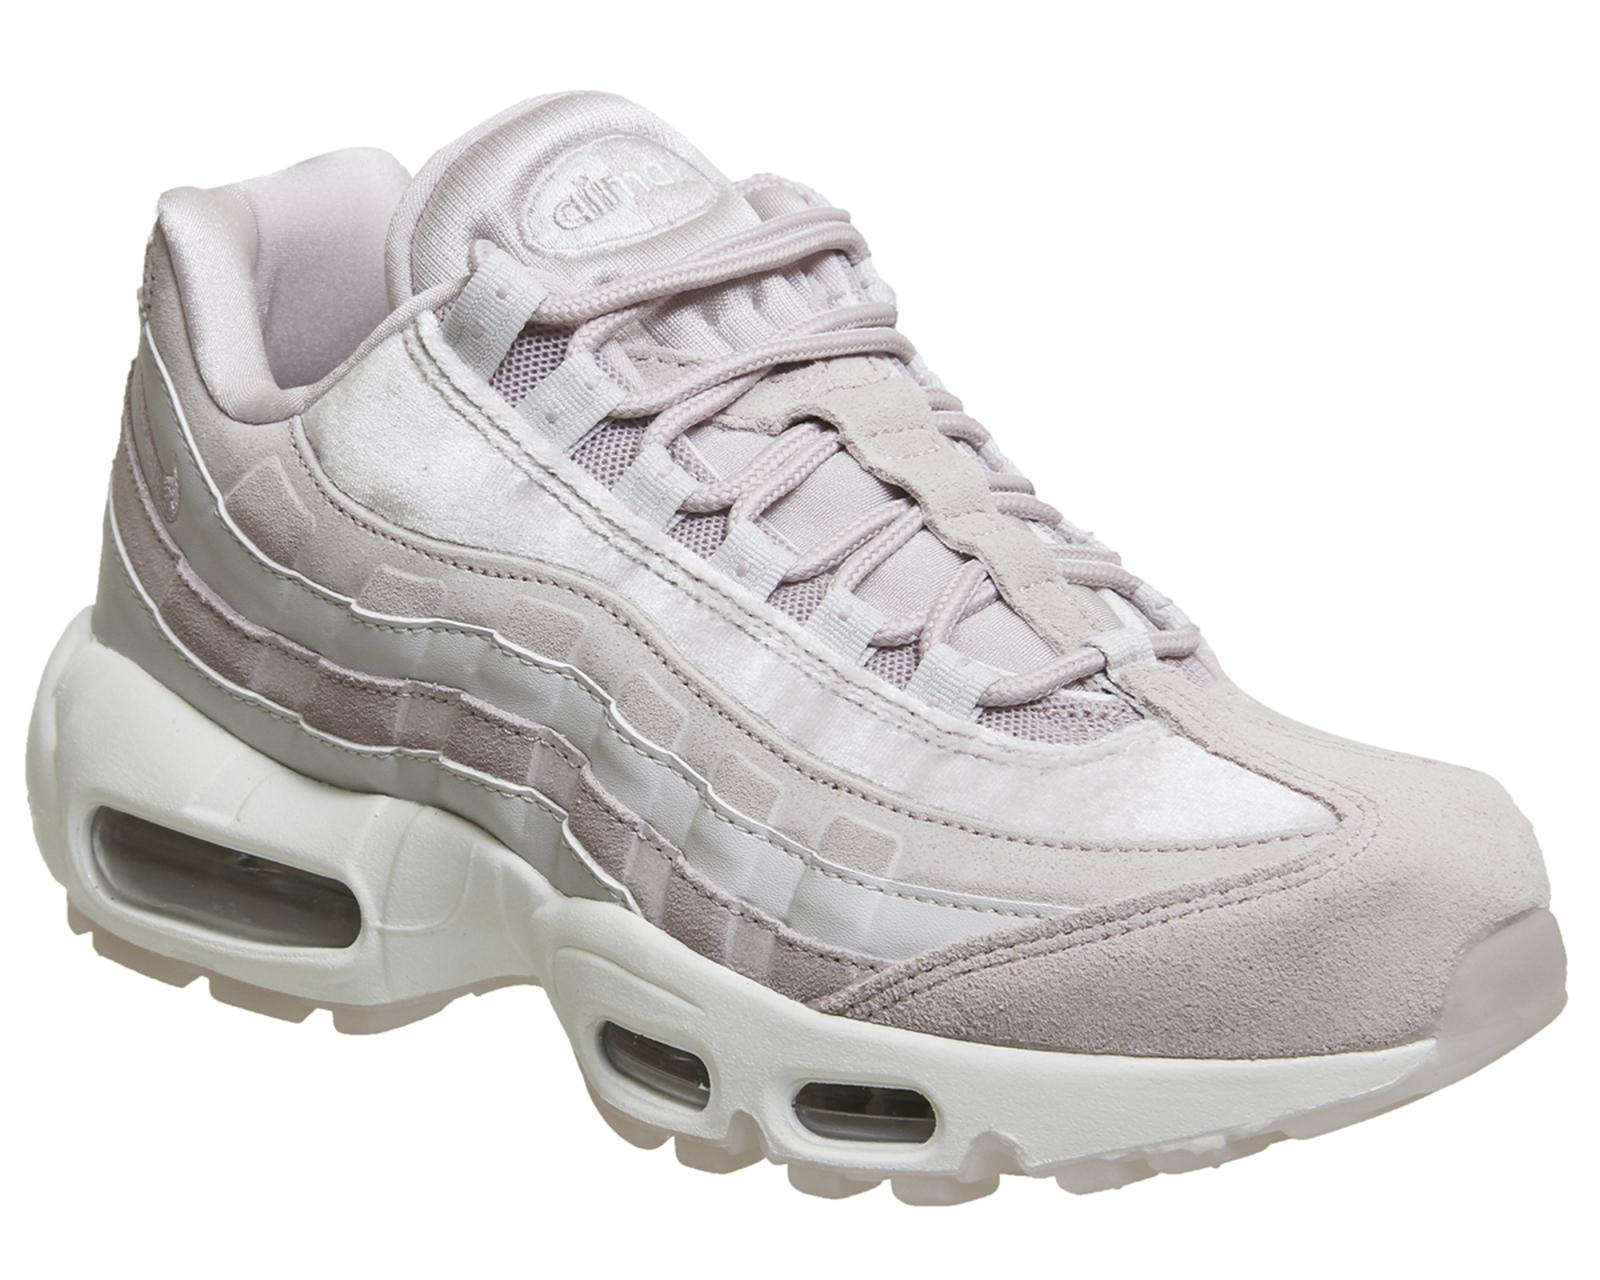 lyst nike air max 95 in gray for men. Black Bedroom Furniture Sets. Home Design Ideas